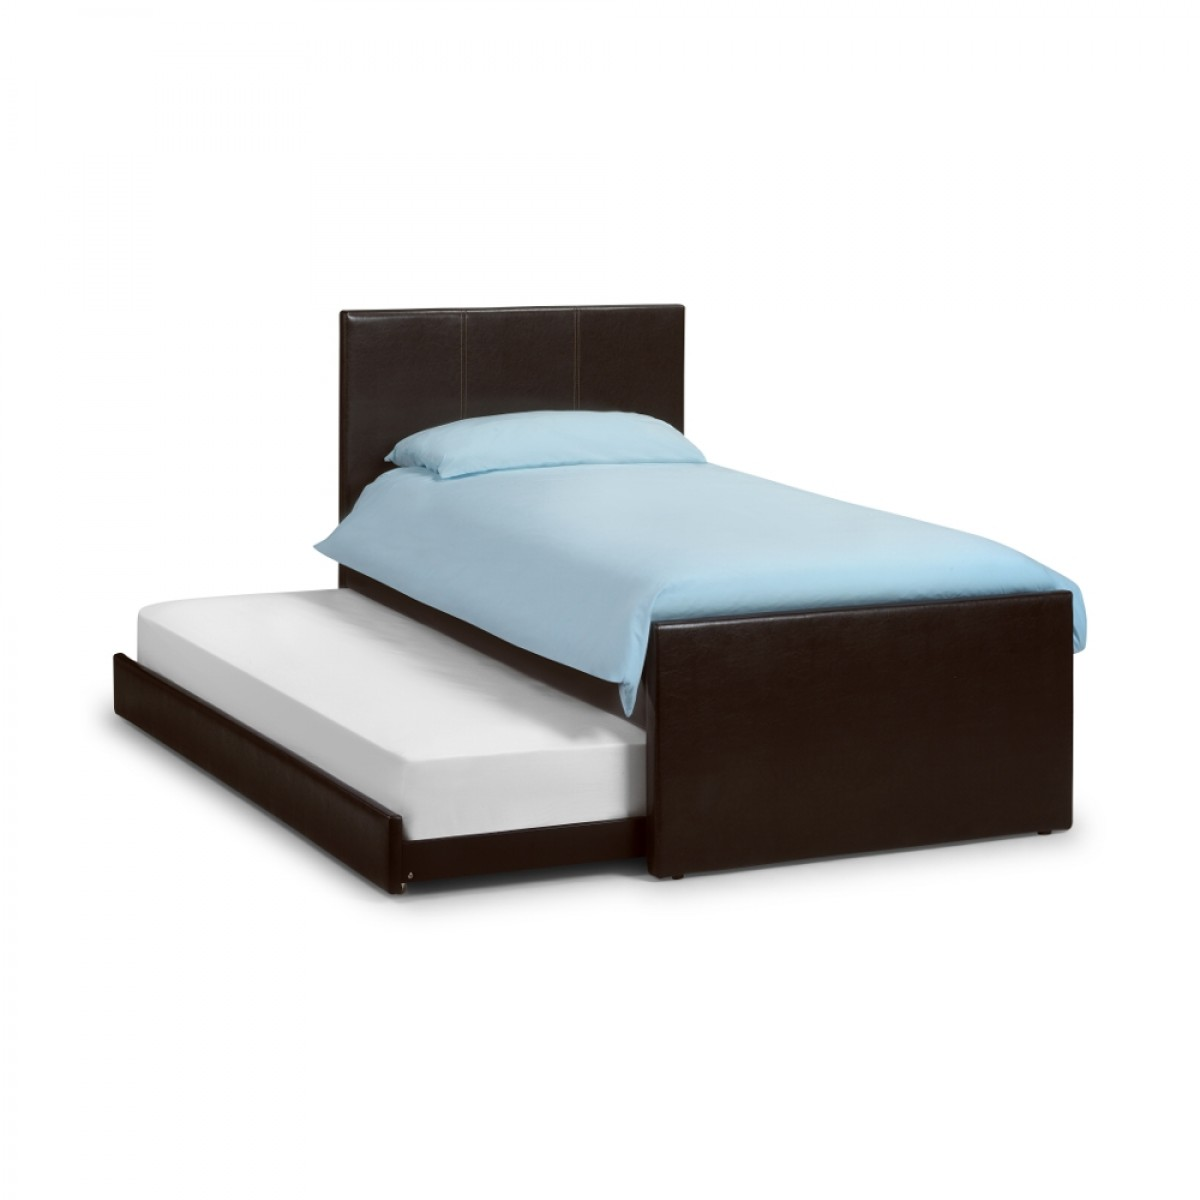 Cosmo Brown Leather Guest Bed and Trundle - 3ft Single